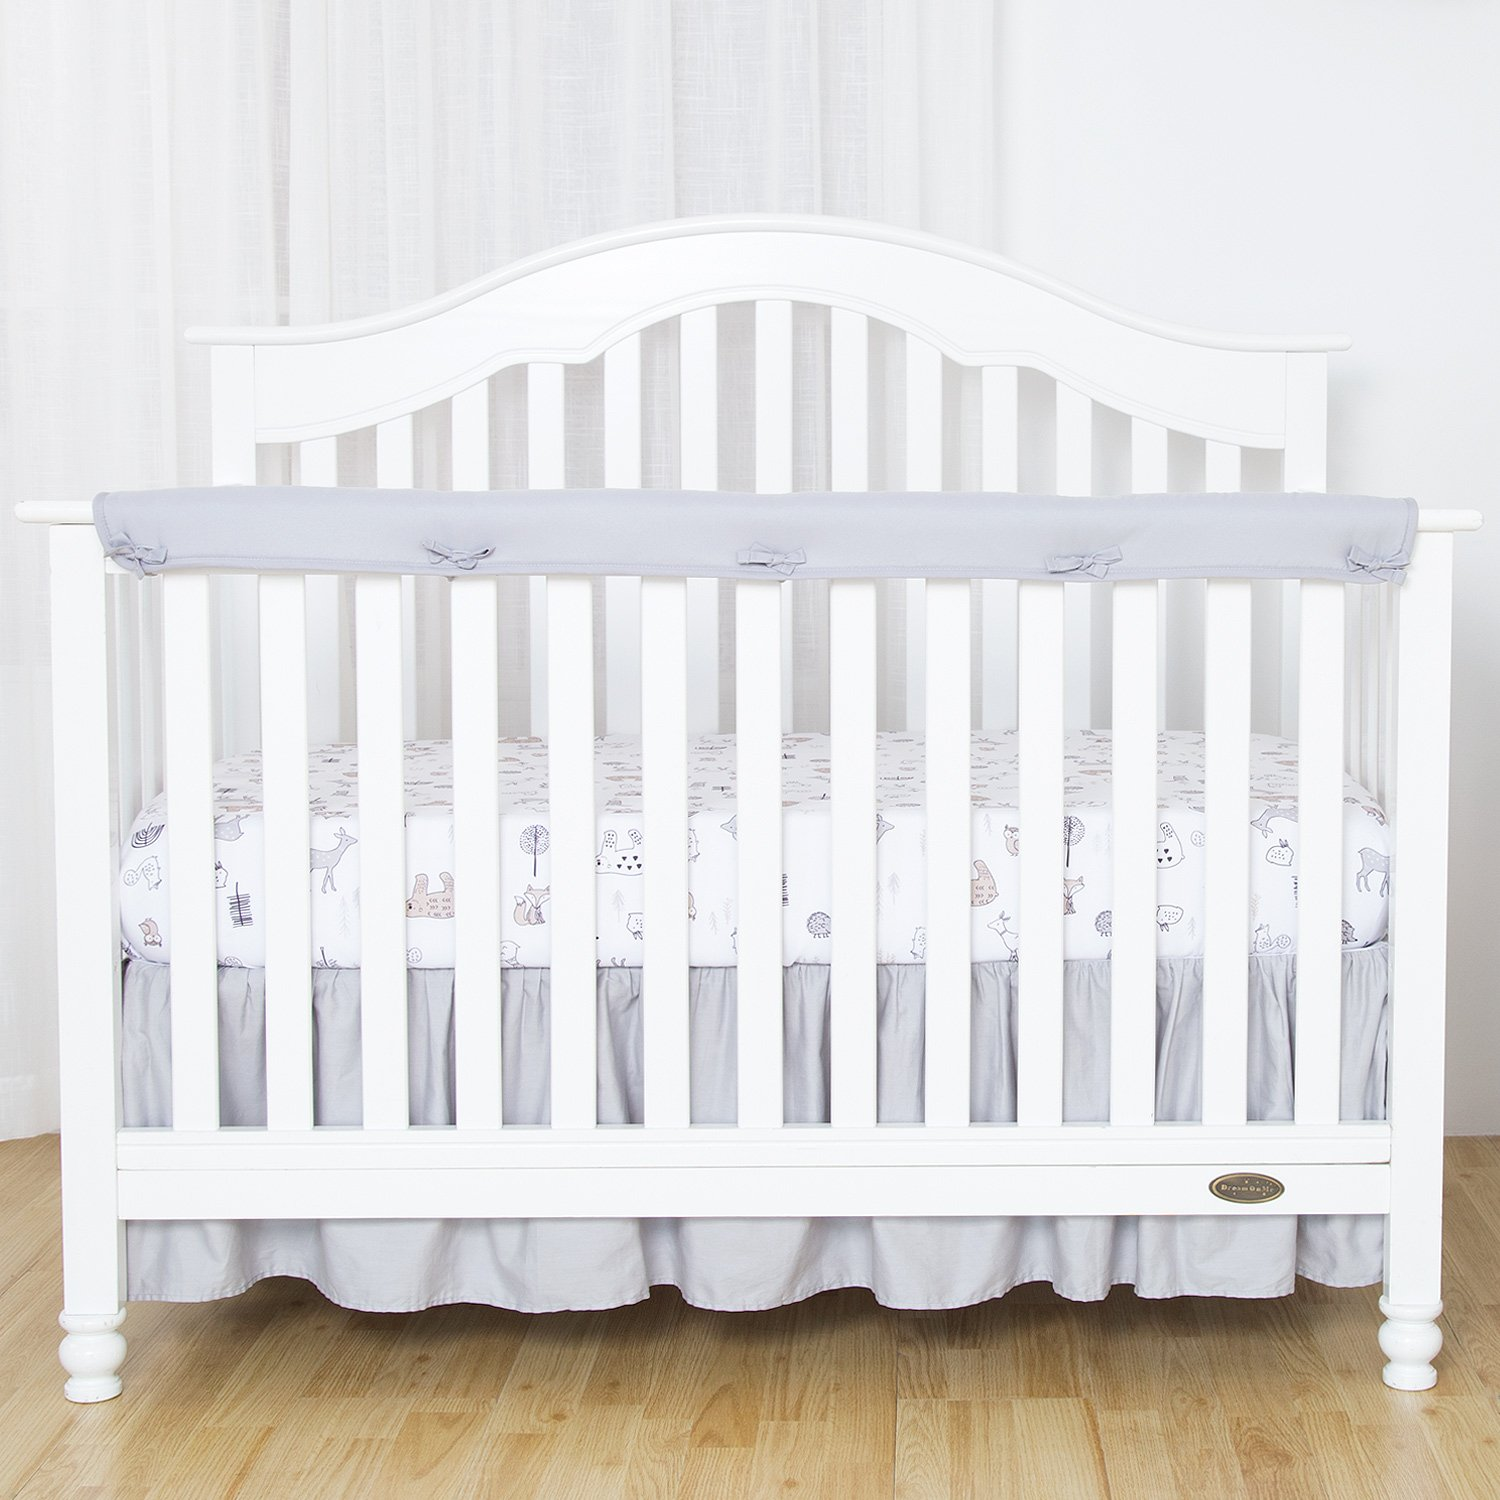 TILLYOU 1-Pack Padded Baby Crib Rail Cover Protector Safe Teething Guard Wrap for Long Front Crib Rails(Measuring Up to 8'' Around), 100% Silky Soft Microfiber Polyester, Reversible, White/Pale Gray